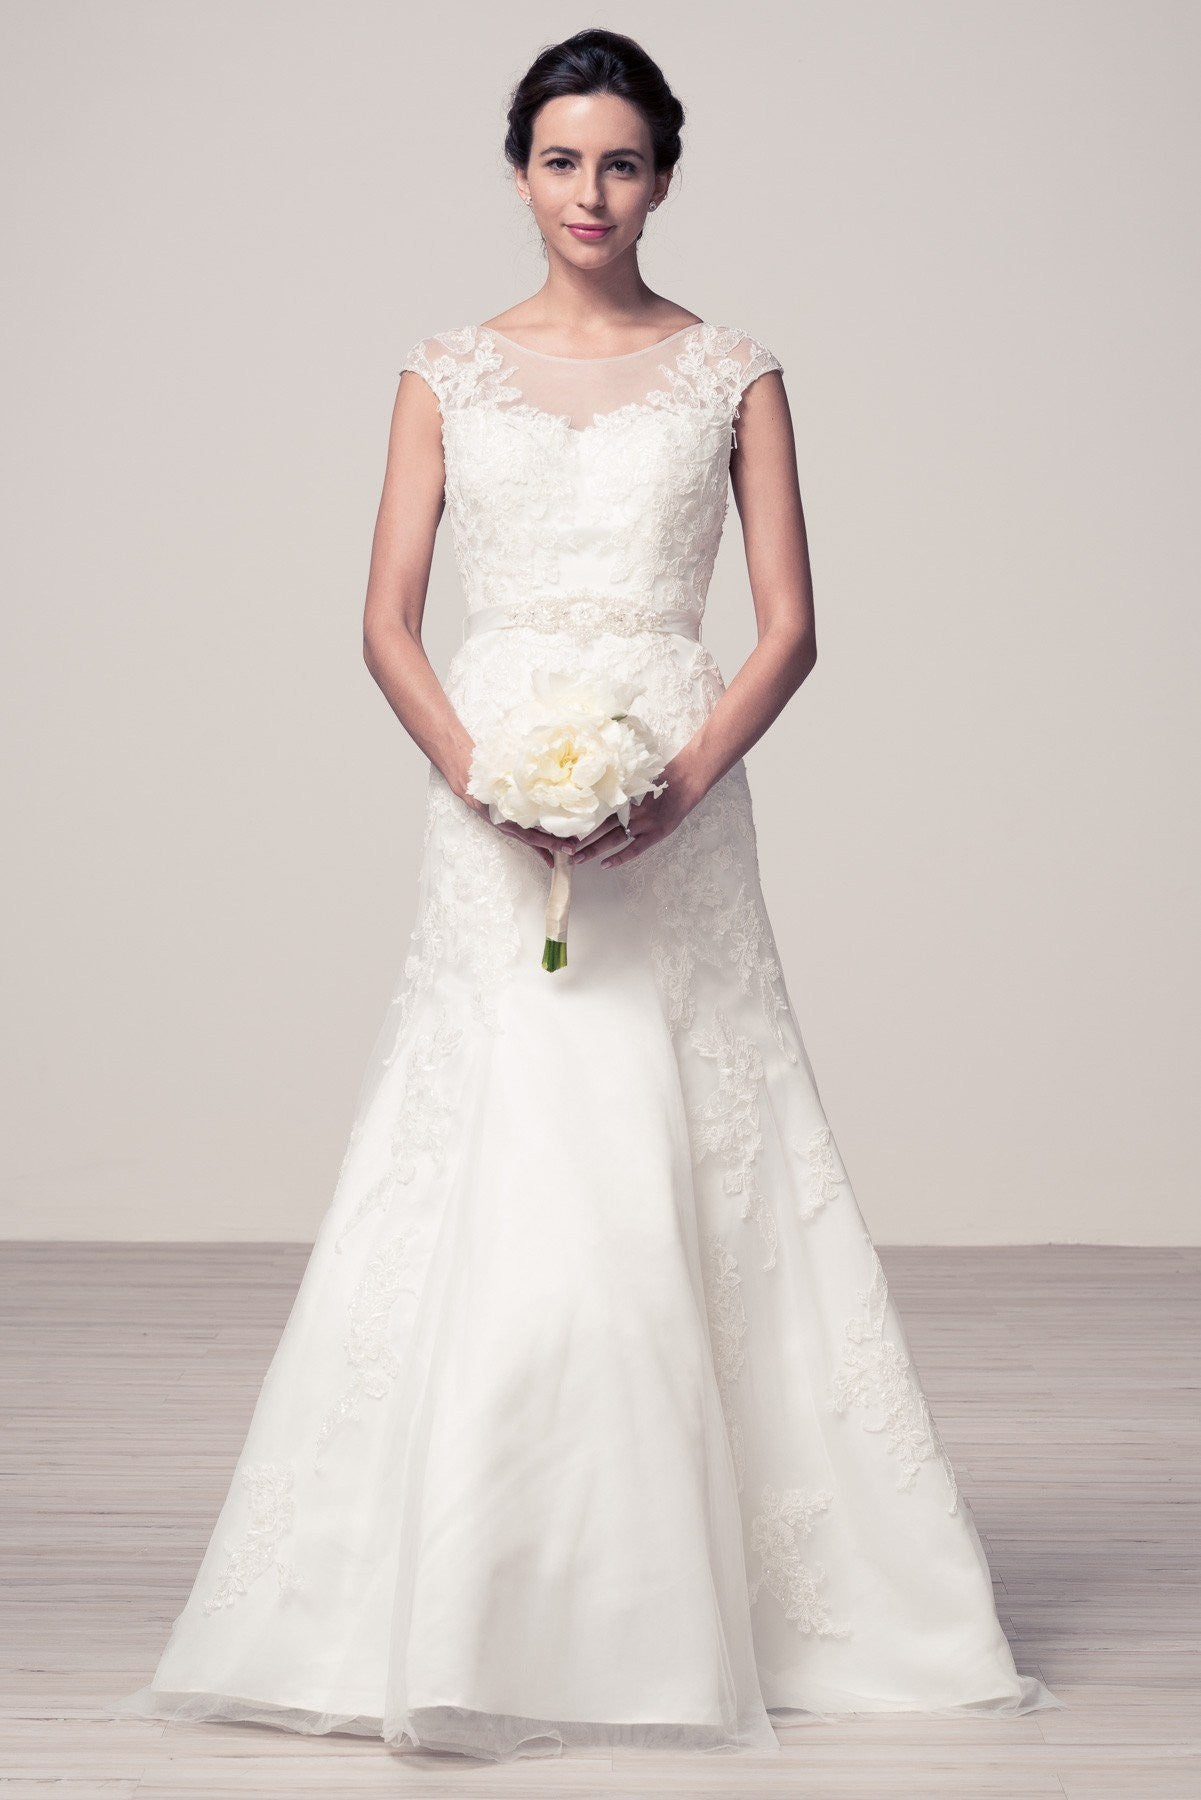 Romantic cap sleeve lace wedding dress #wjw2054 – Simply Fab Dress